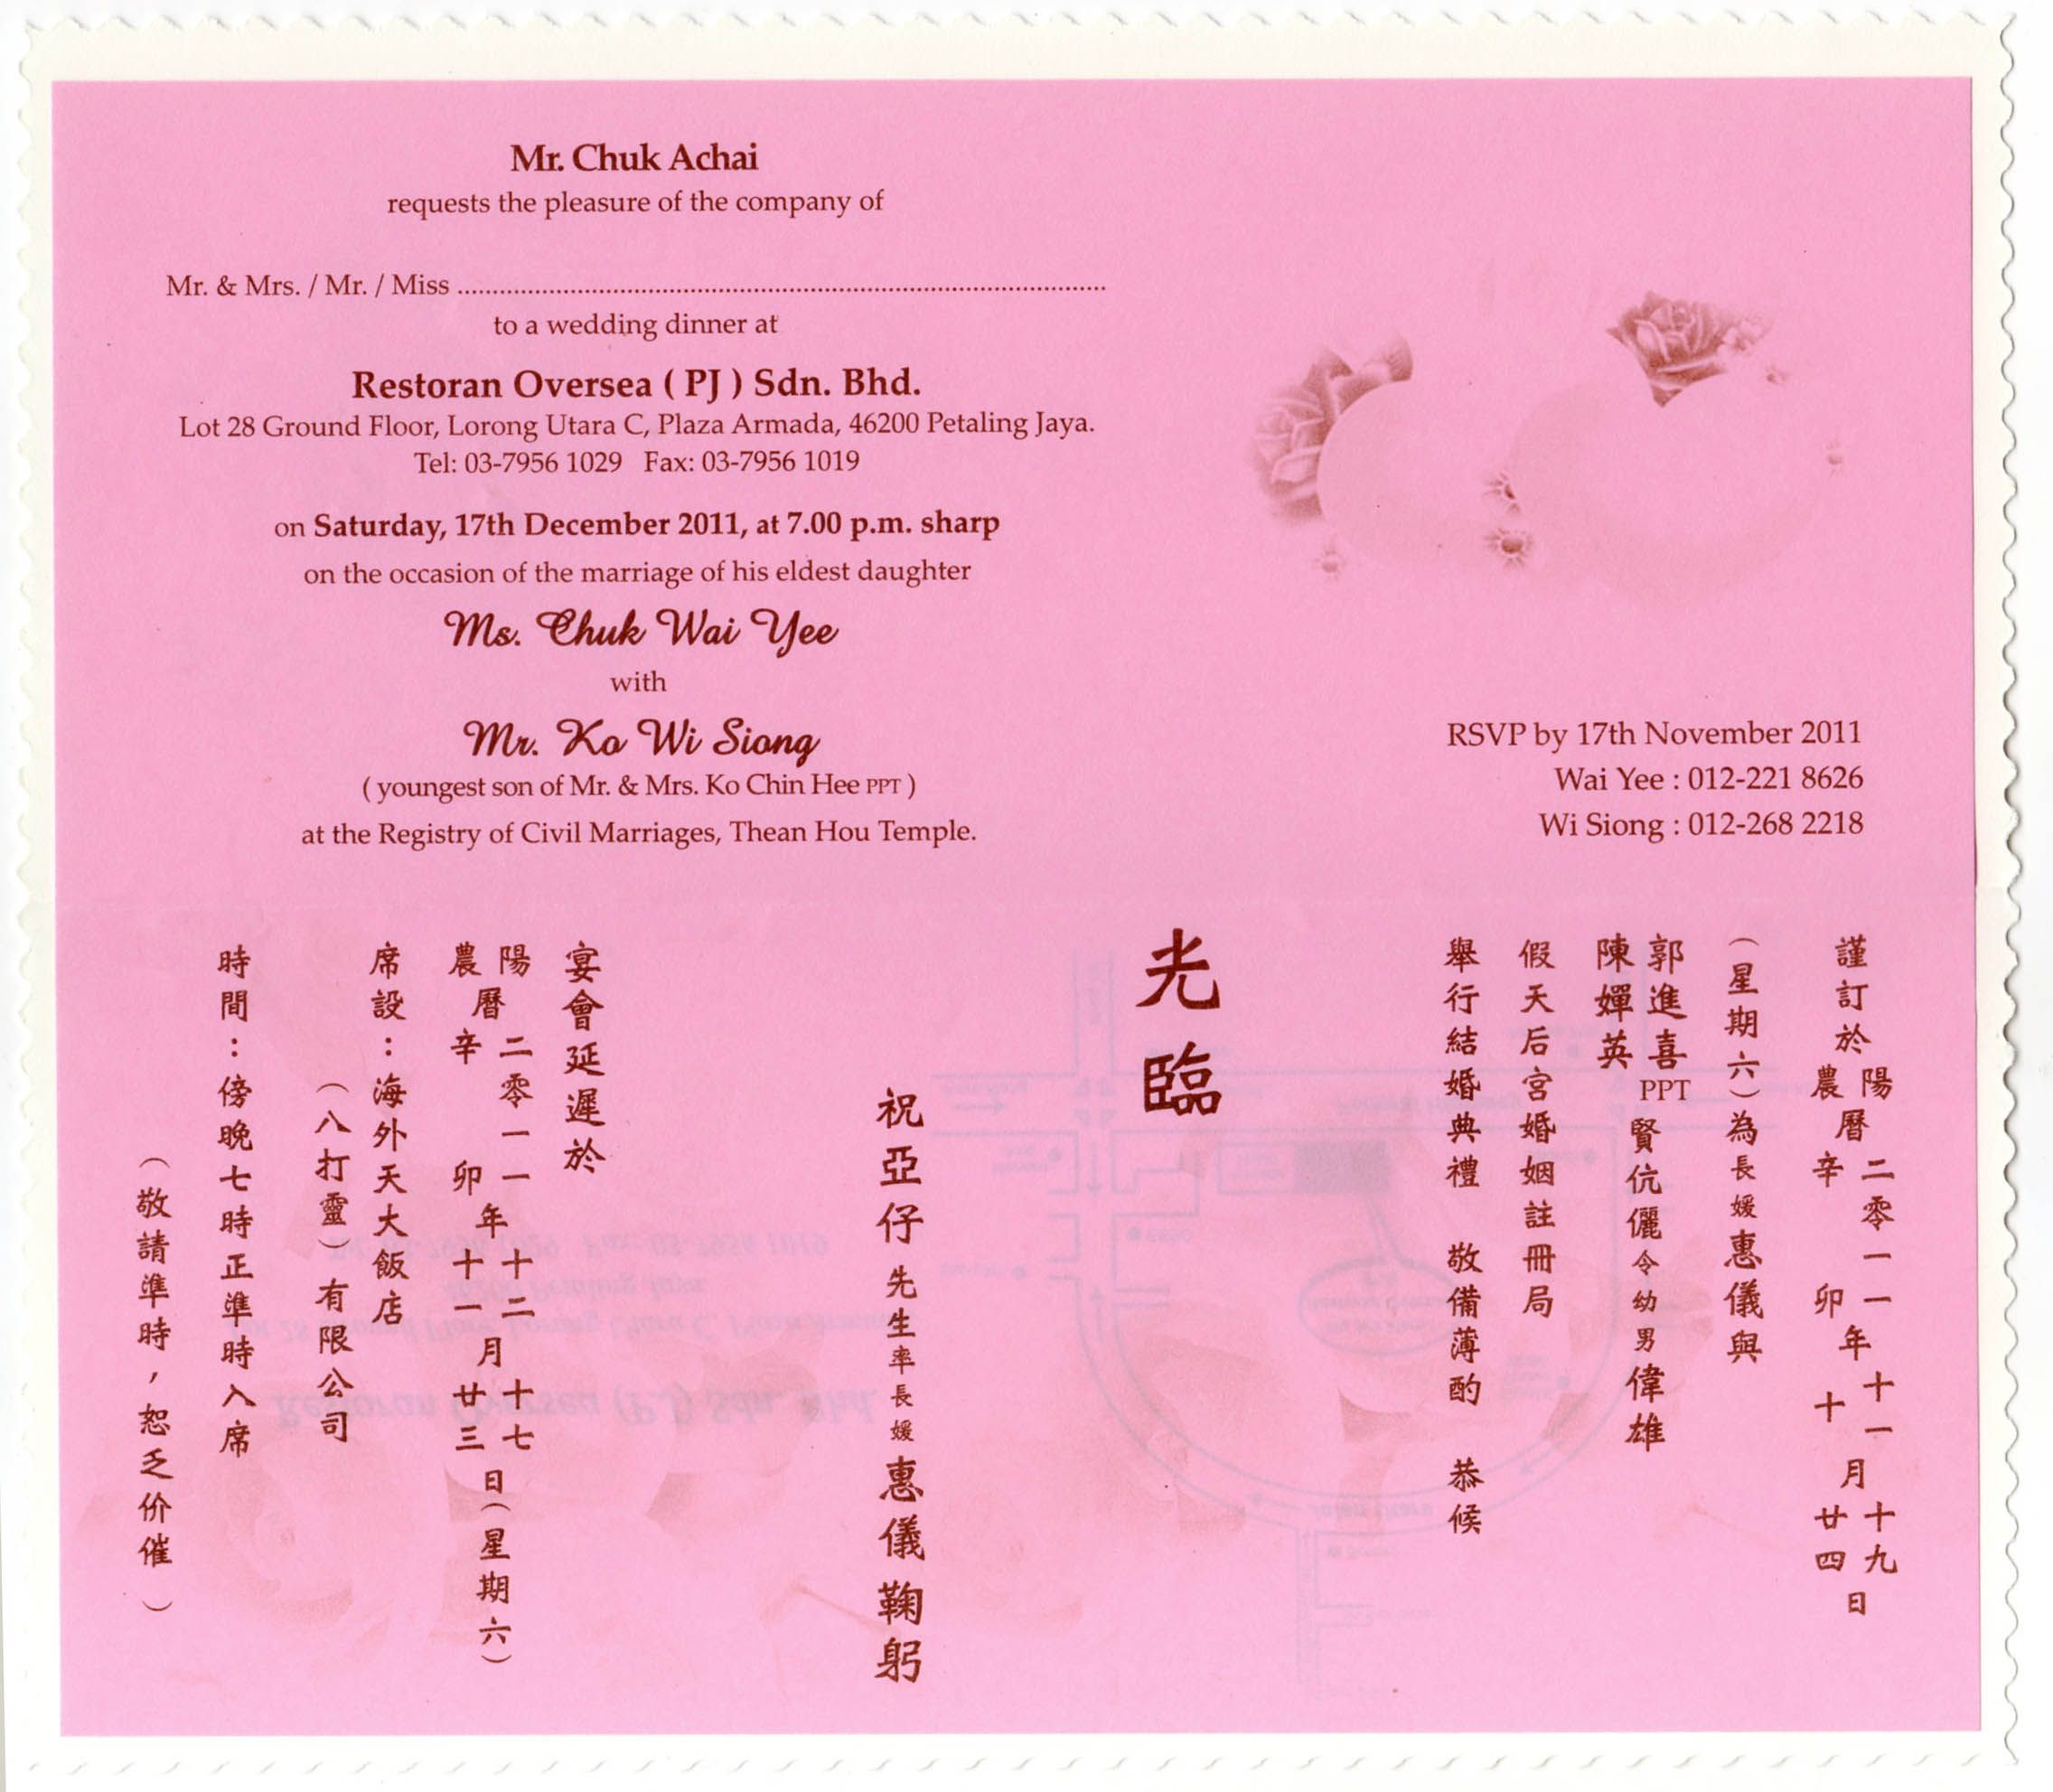 Chinese Wedding Invitation The Lost Mystery Of Chinese Weddin Chinese Wedding Invitation Chinese Wedding Invitation Card Wedding Invitation Wording Templates